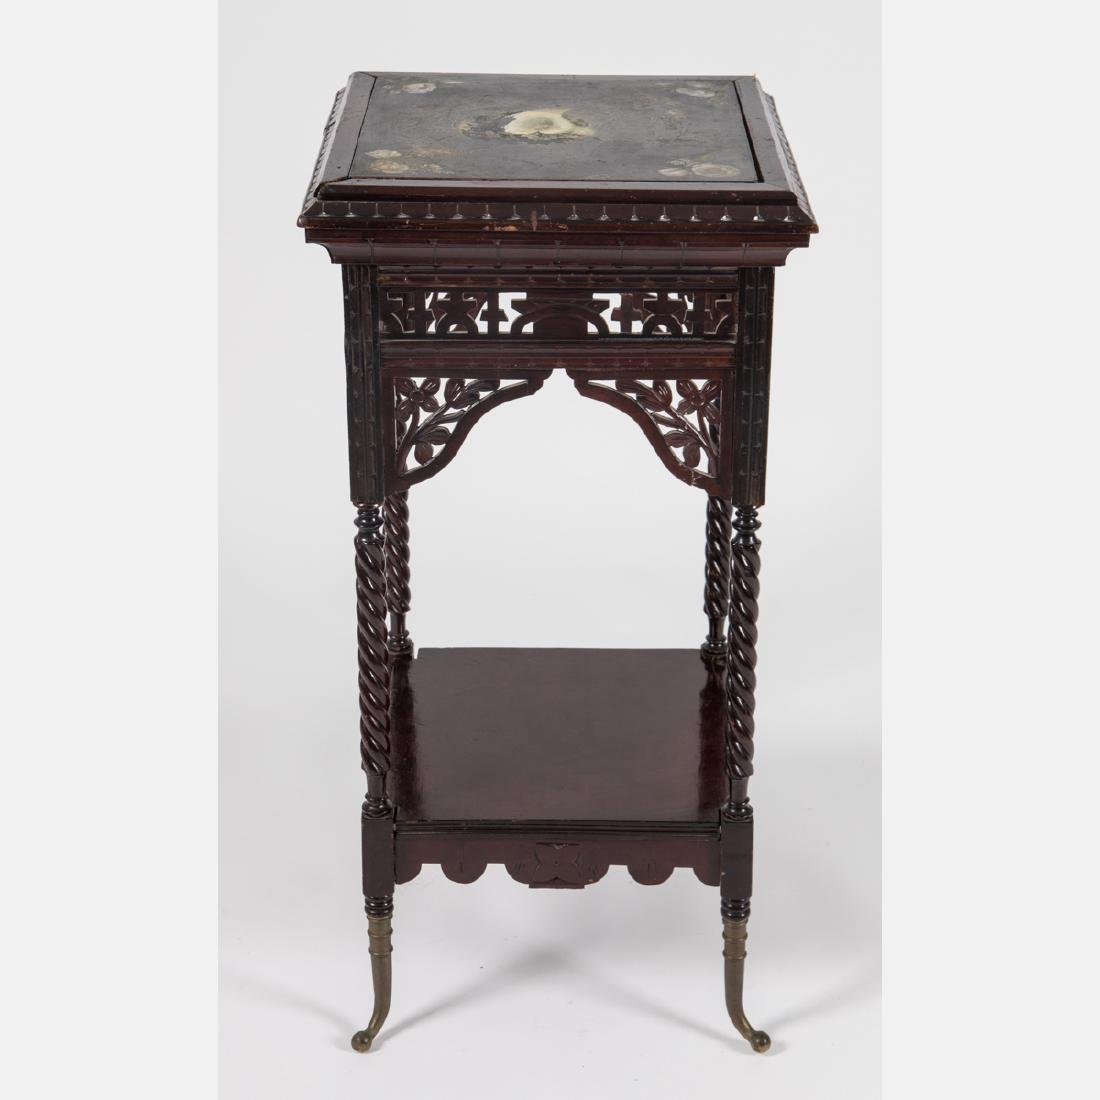 A Victorian Carved and Stained Hardwood Side Table,